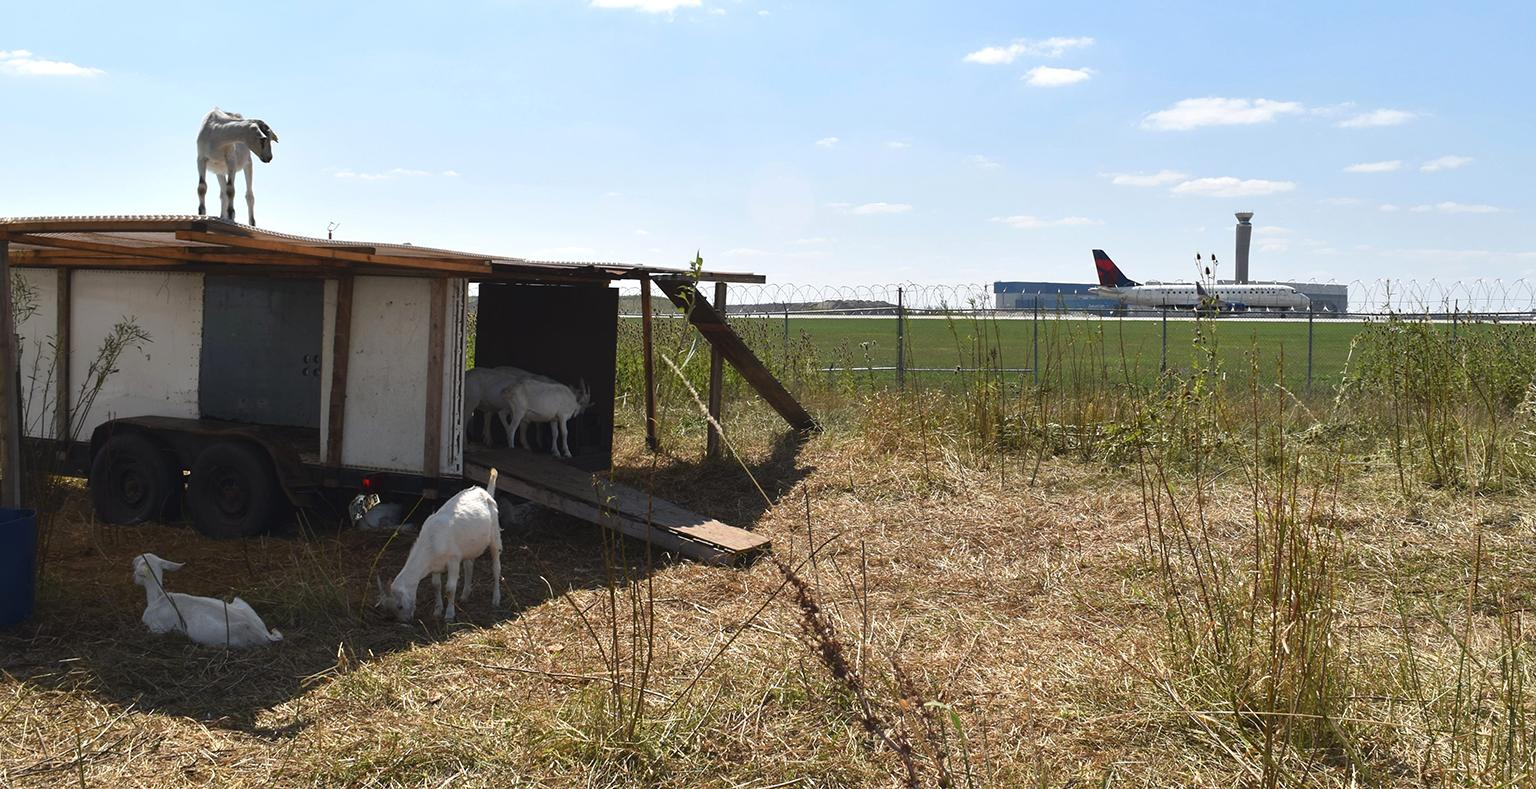 Goats help clear vegetation near the airfield at O'Hare International Airport. (Courtesy Chicago Department of Aviation)